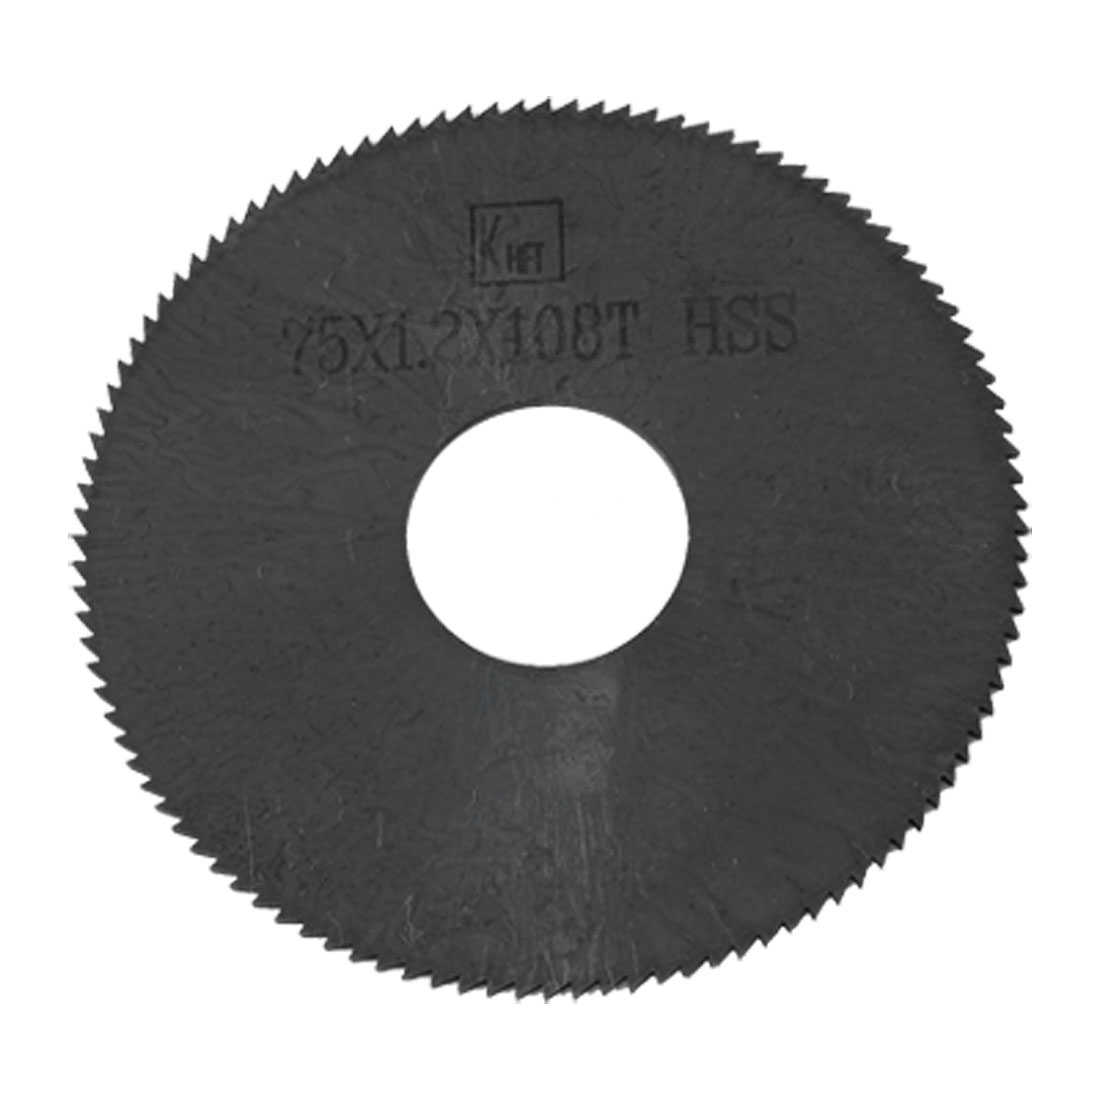 Unique Bargains 75mm x 1.2mm 108 Peg Teeth Black HSS Cutting Slitting Saw